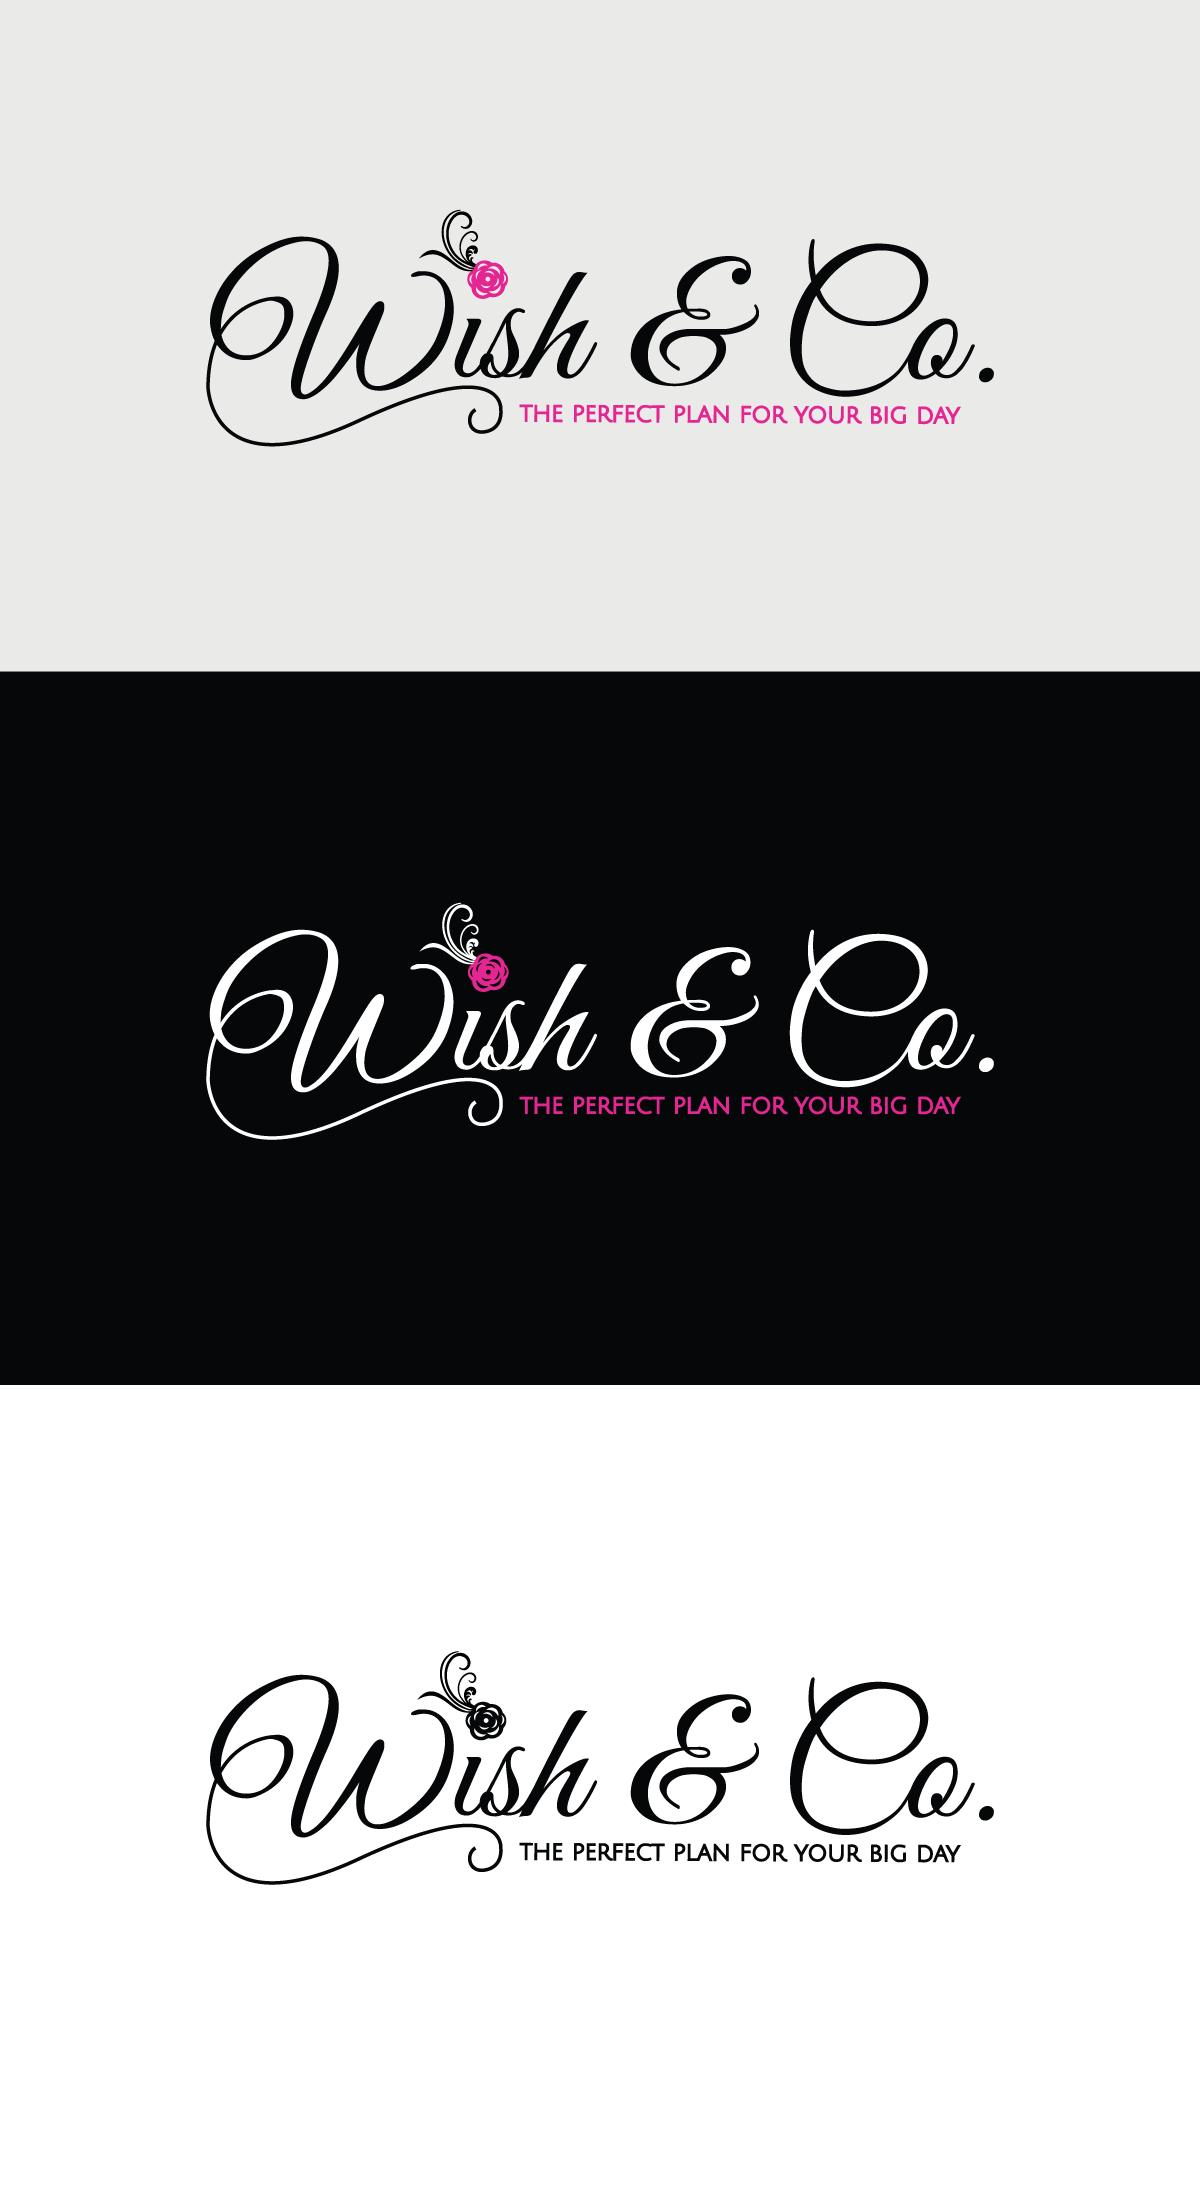 destination wedding planning company brand identity package for Wish&Co.